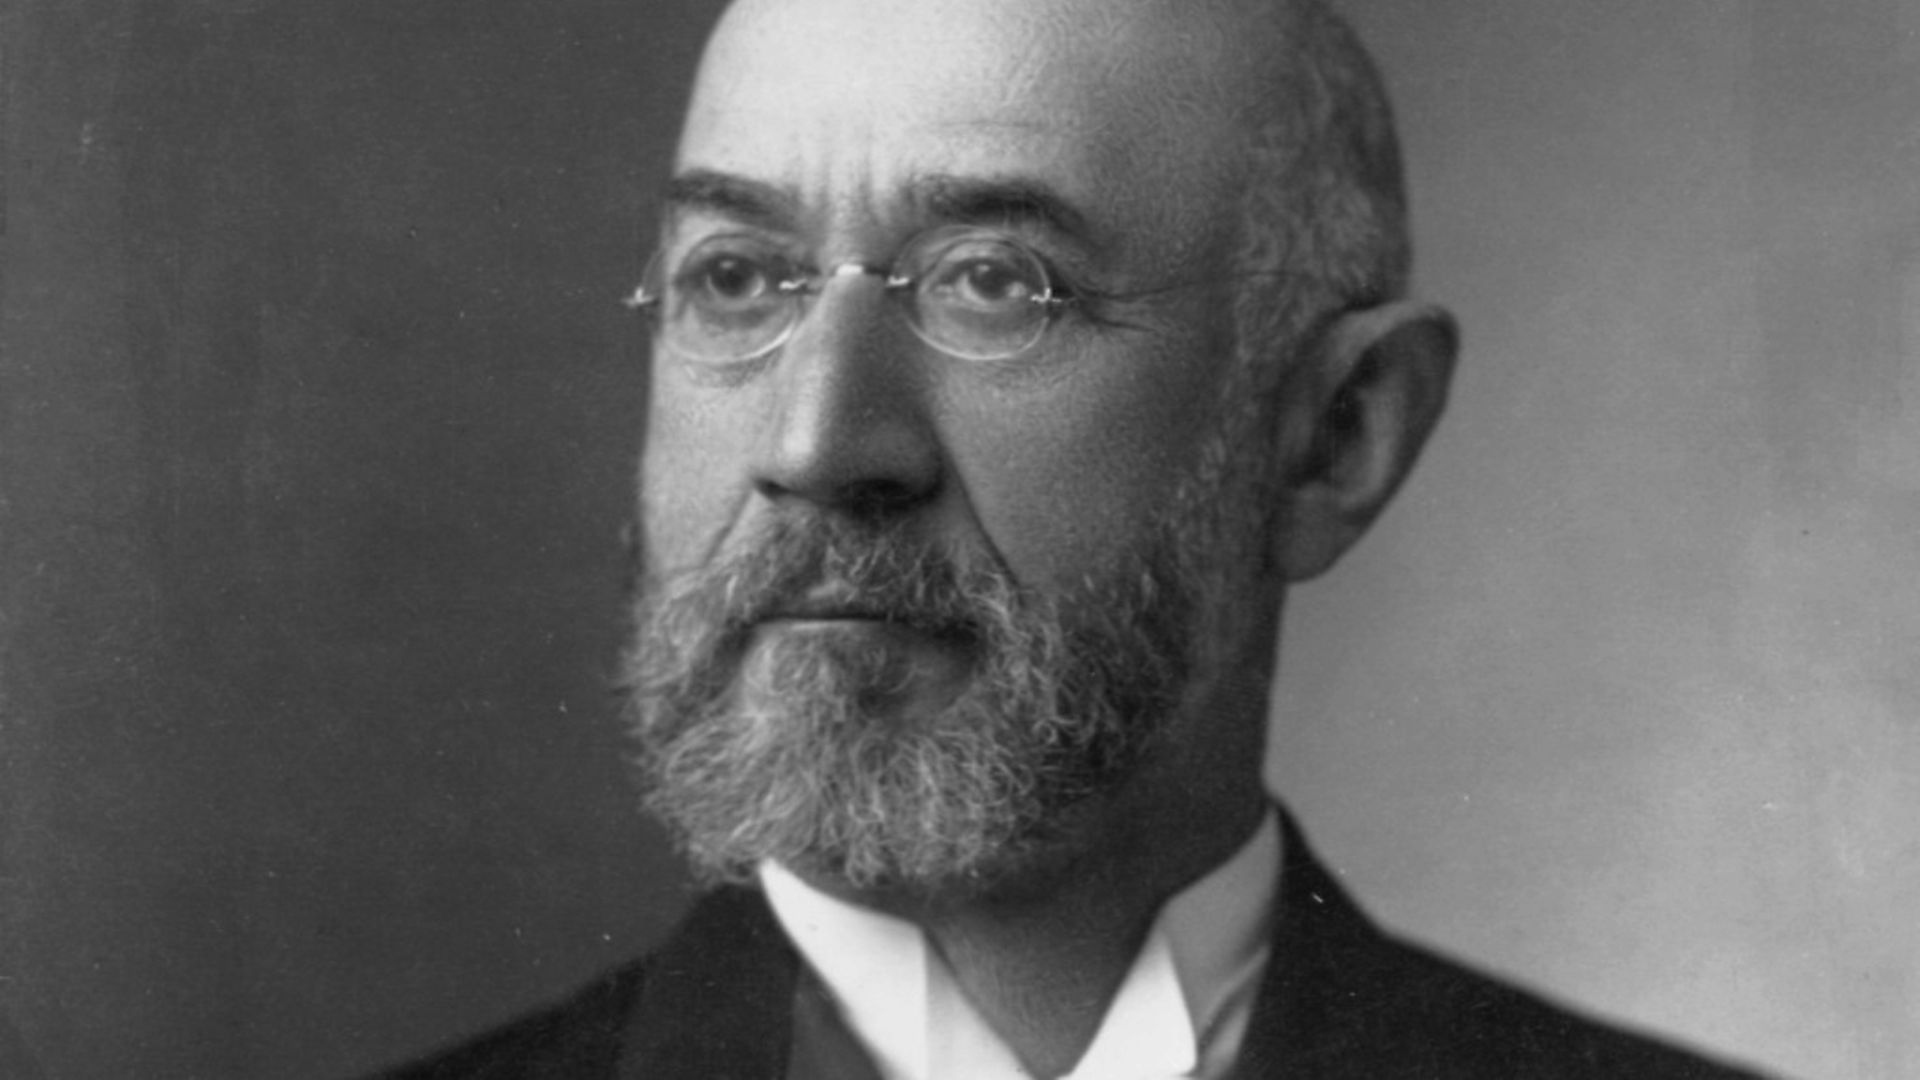 Isidor Straus, co-owner of Macy's, was among the victims of the Titanic sinking. Picture: Getty Images - Credit: Corbis/VCG via Getty Images